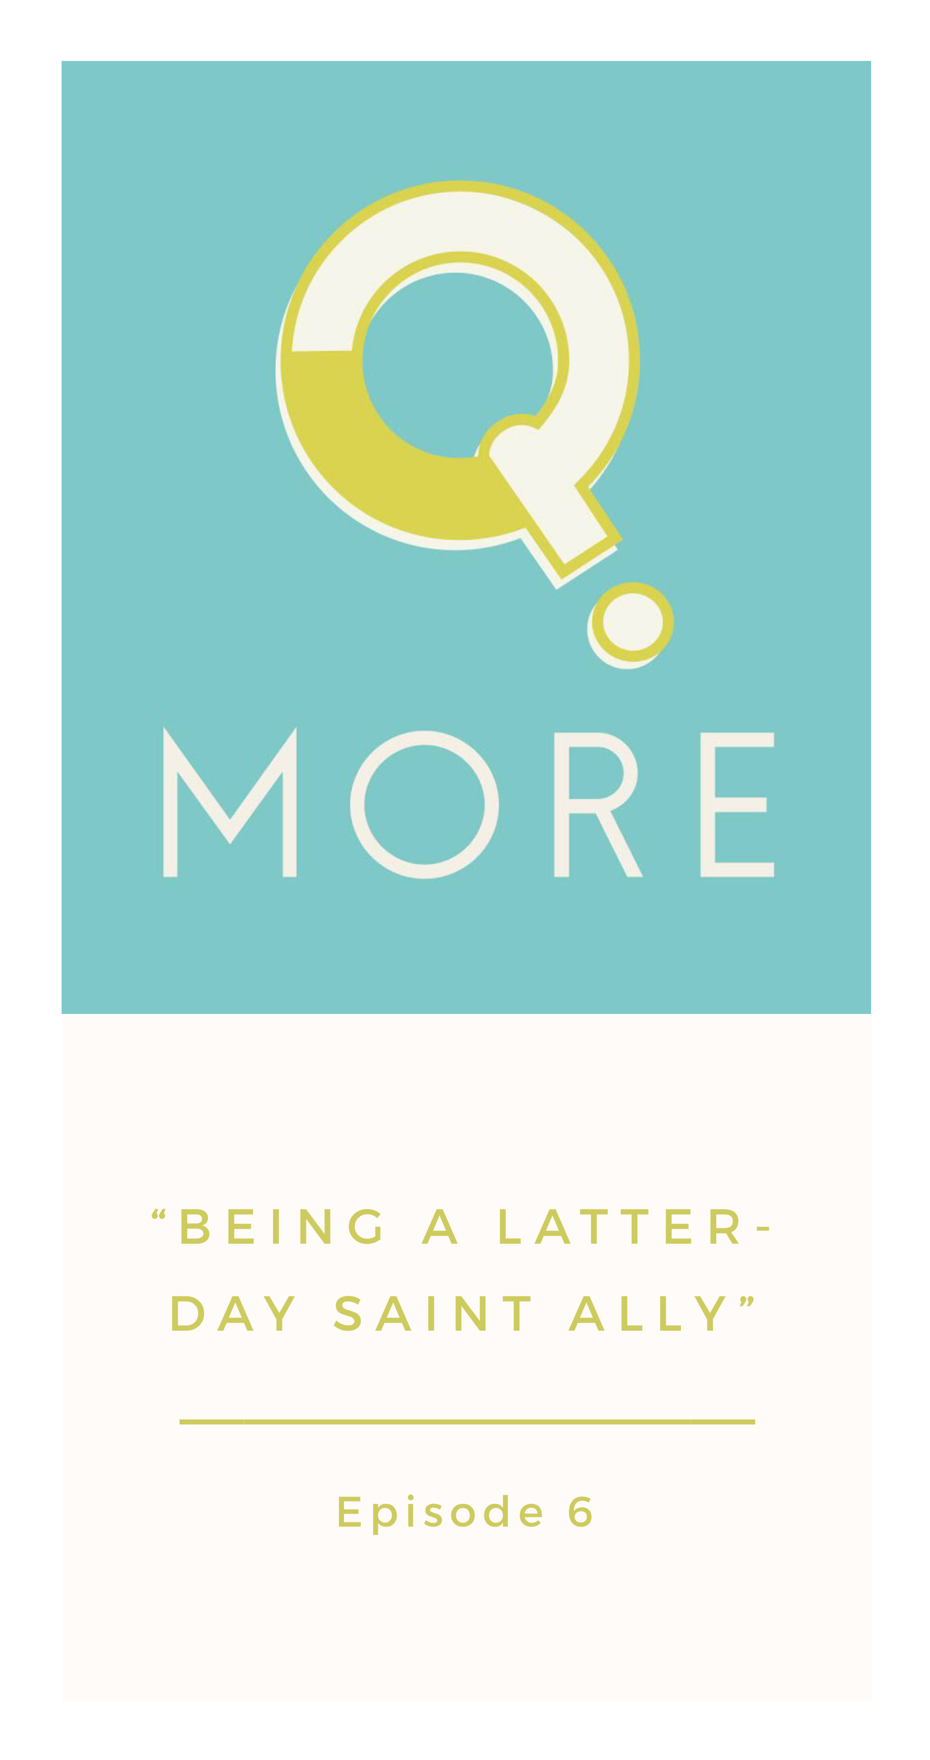 Episode 6: Being A Latter-day Saint Ally, Q.More Podcast